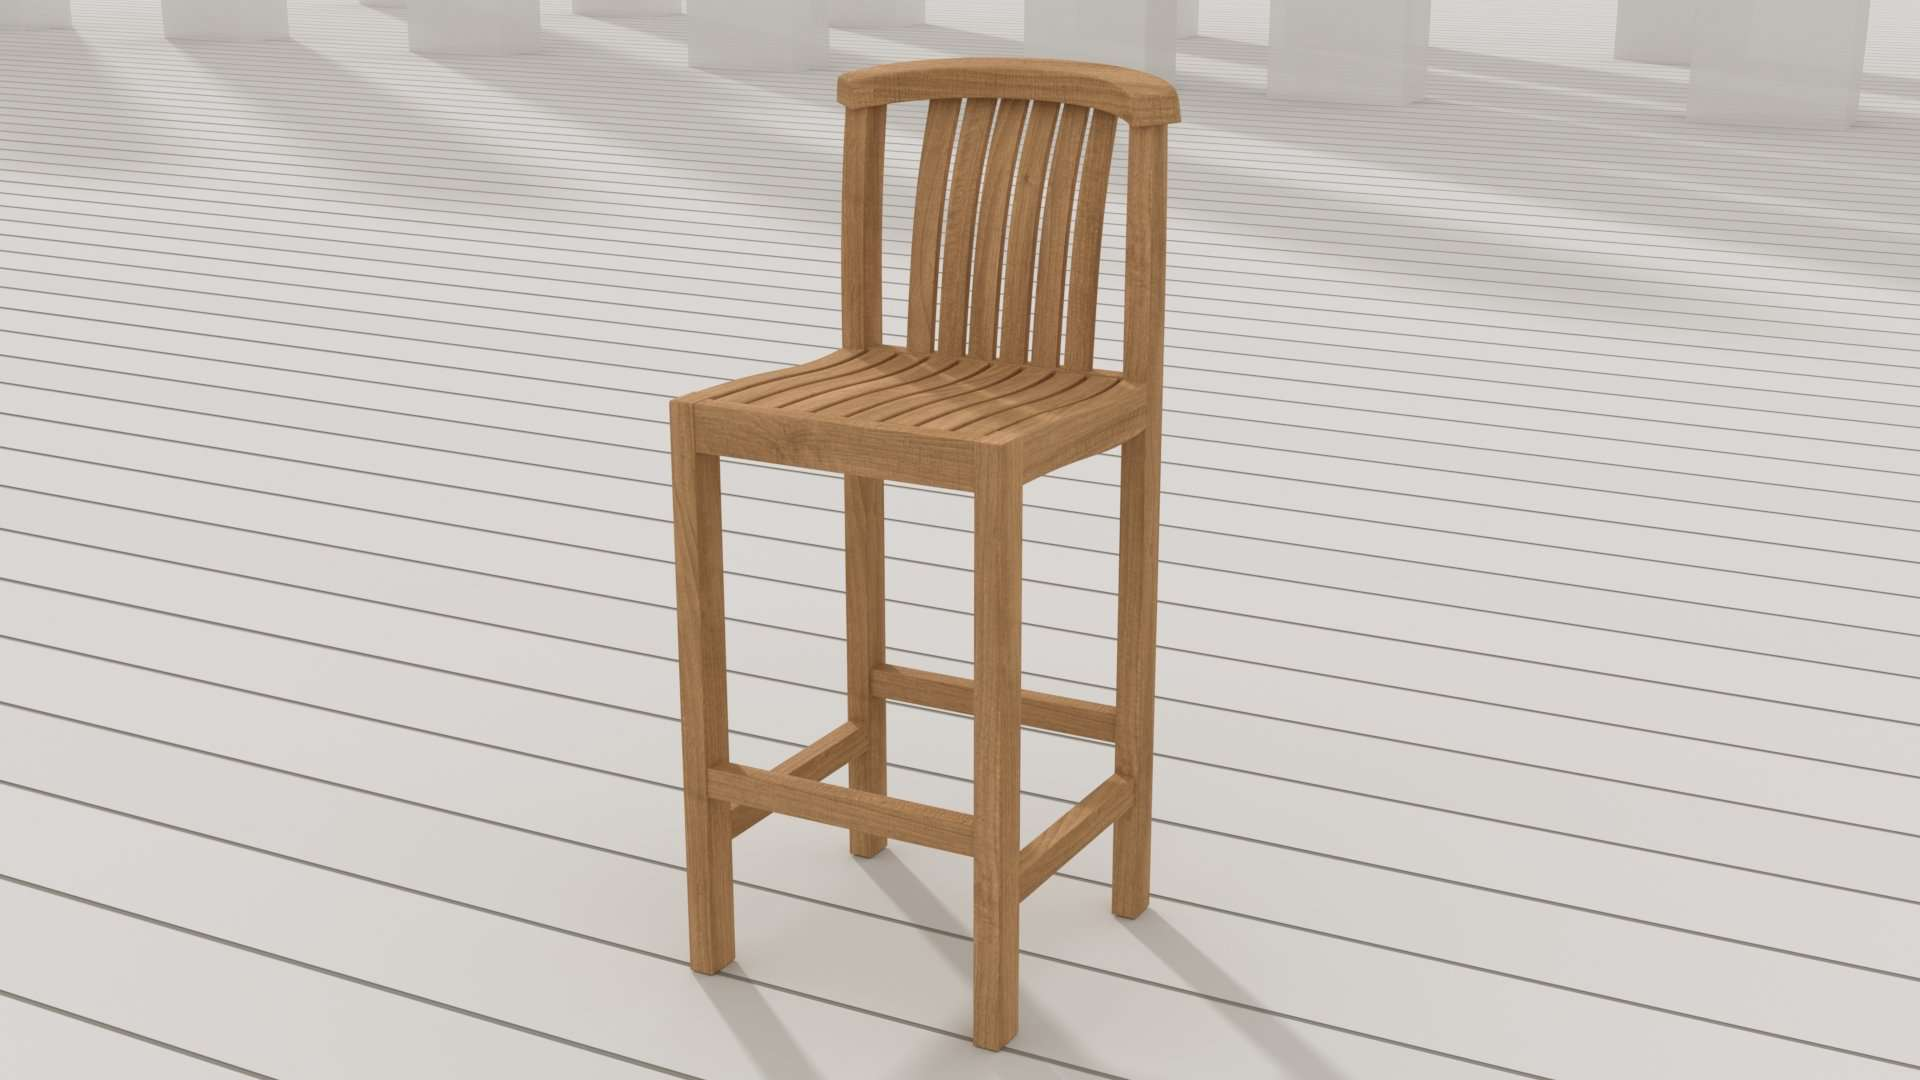 Winchester Teak Bar Stool - Without Arms  - Chic Teak® | Luxury Teak Furniture